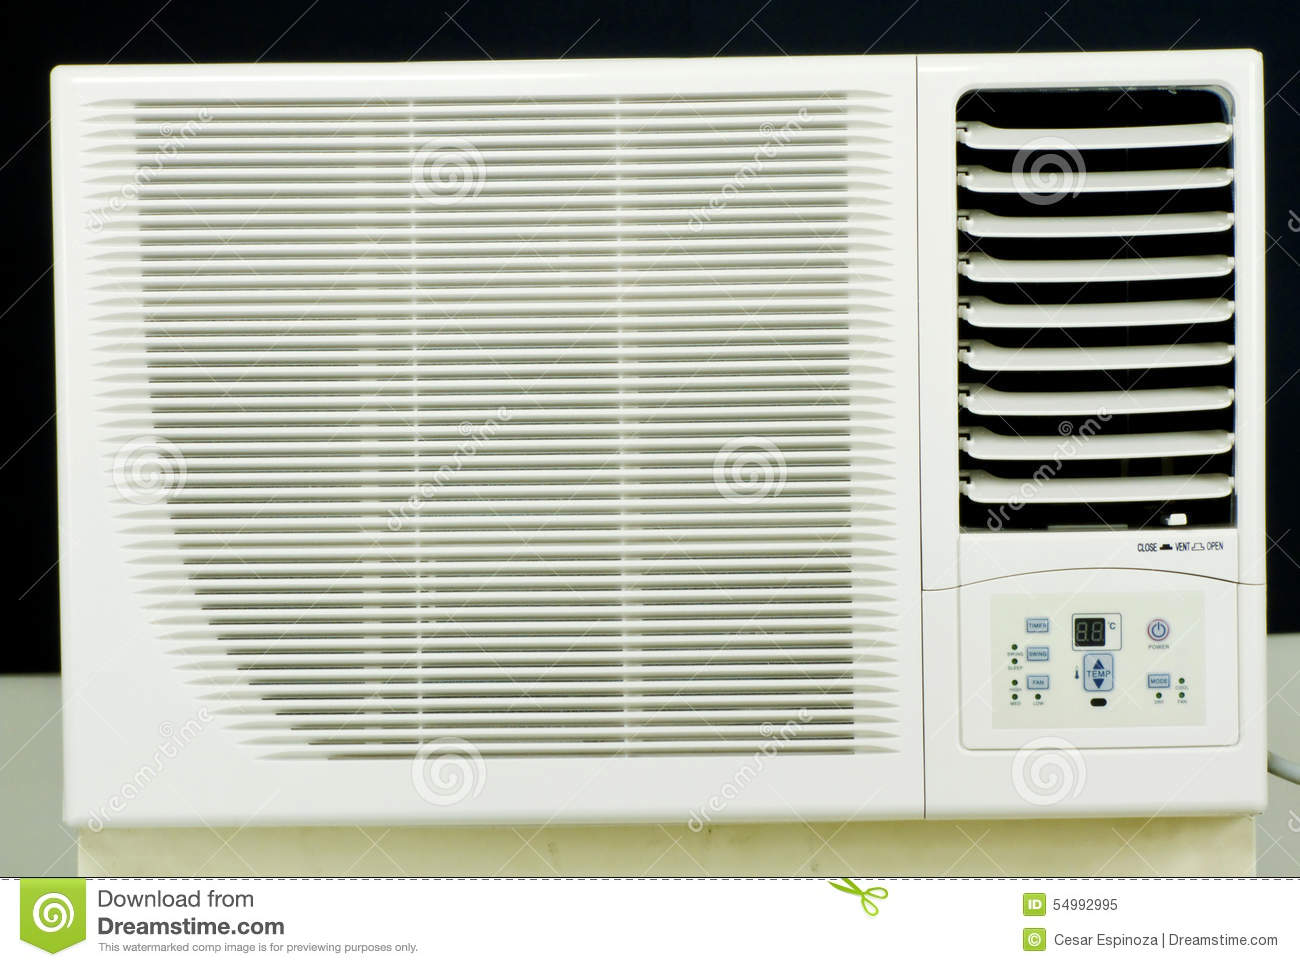 No brand windows air conditioner stock photo image 54992995 for Brand windows